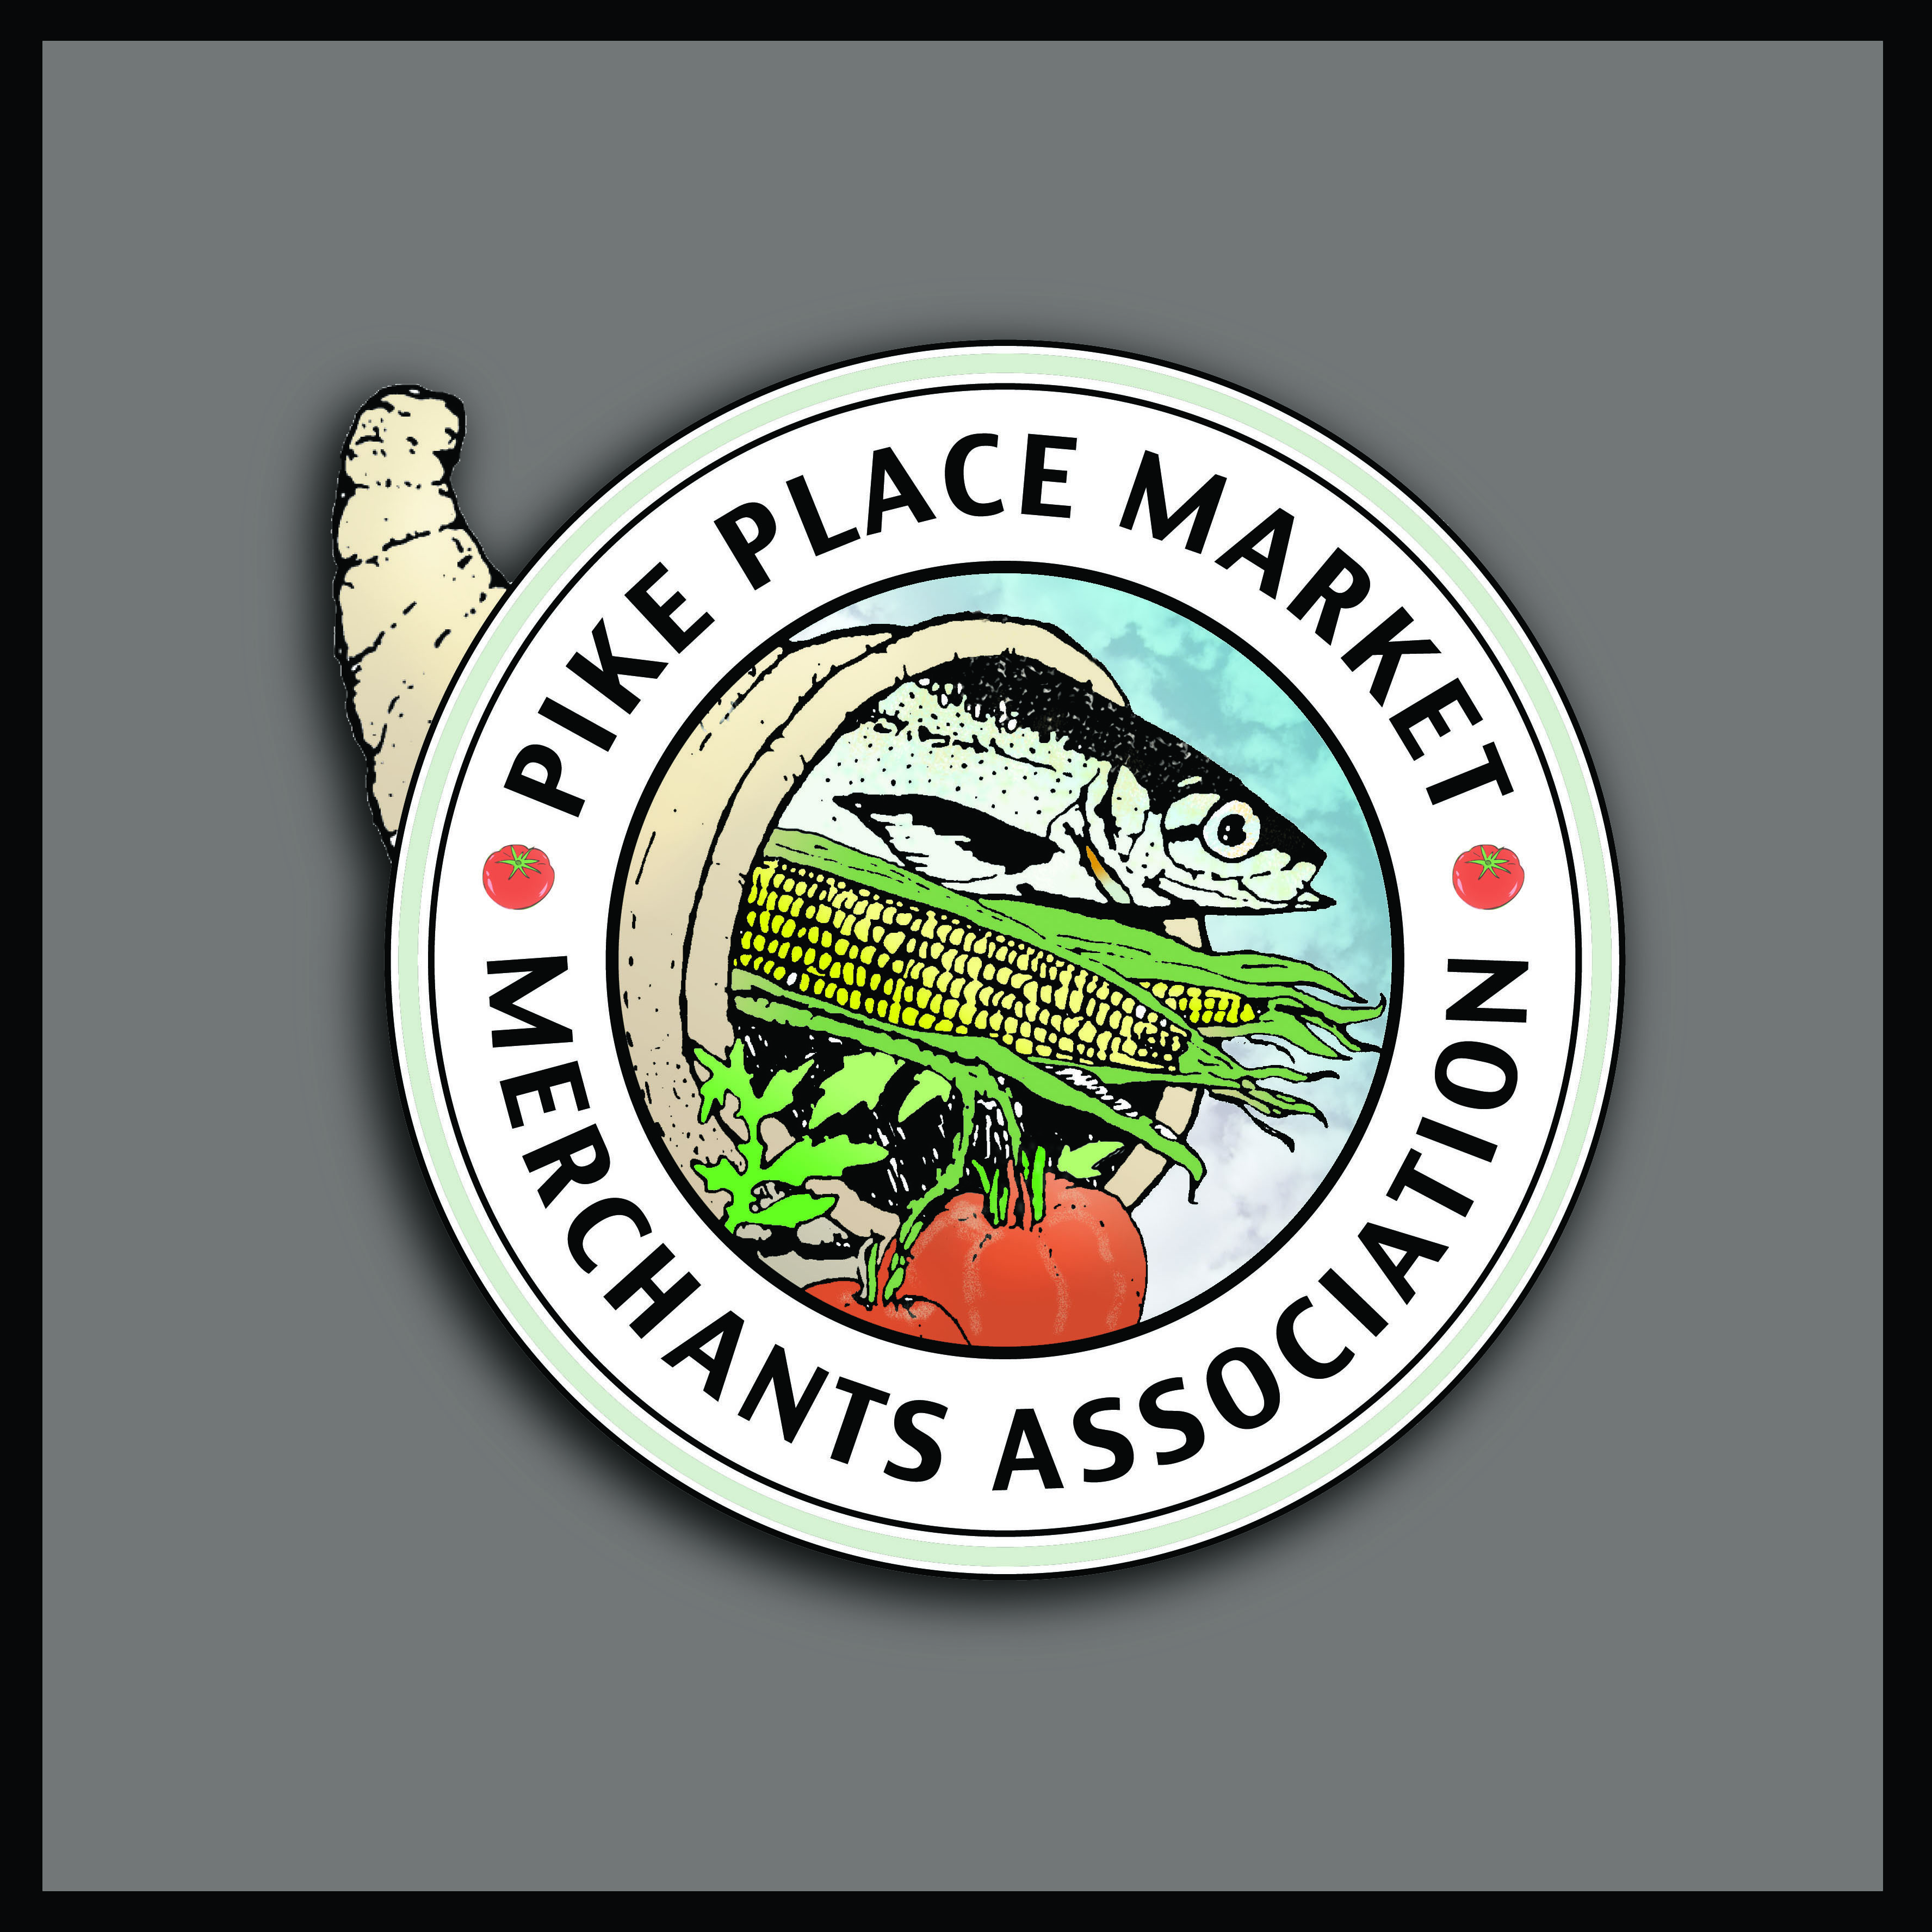 Pike Place Market Merchants Assn.